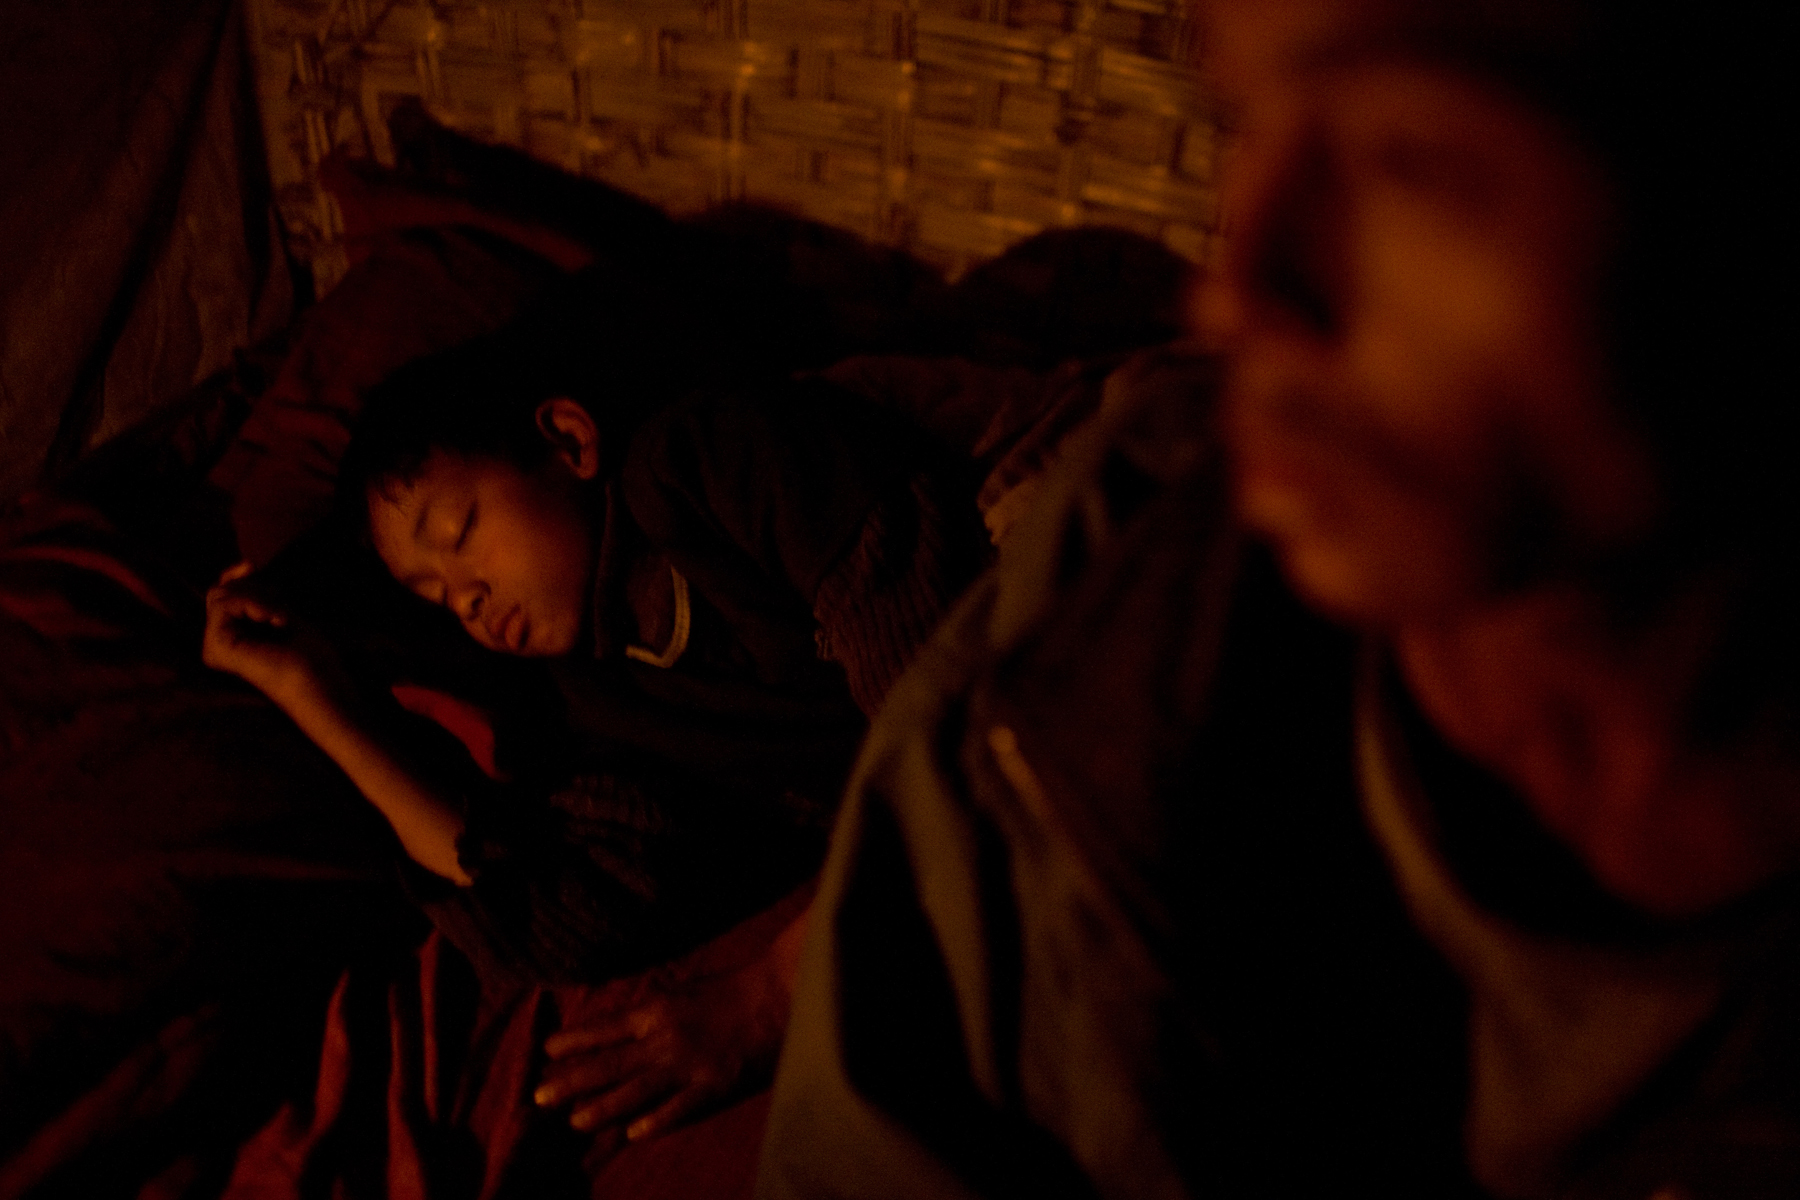 A young boy sleeps next to his father in their home in Kathmandu.